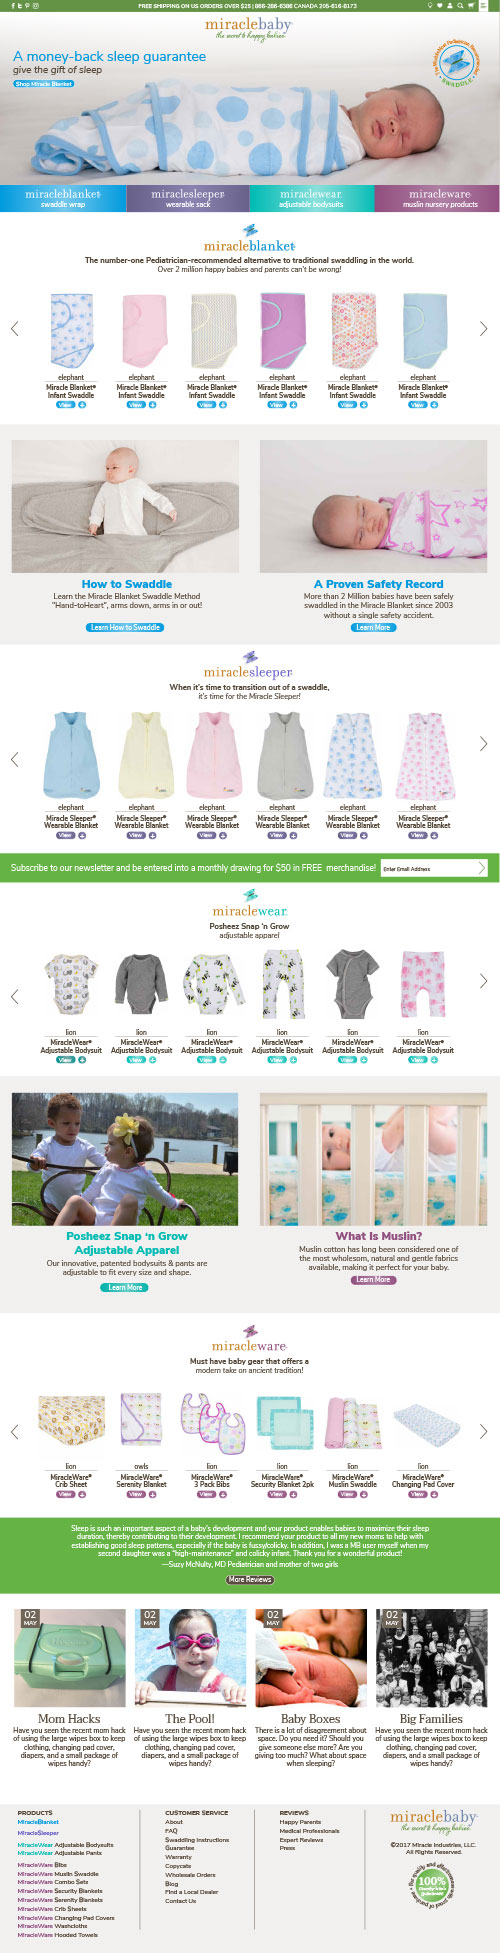 Miracle Blanket Ecommerce Website Design